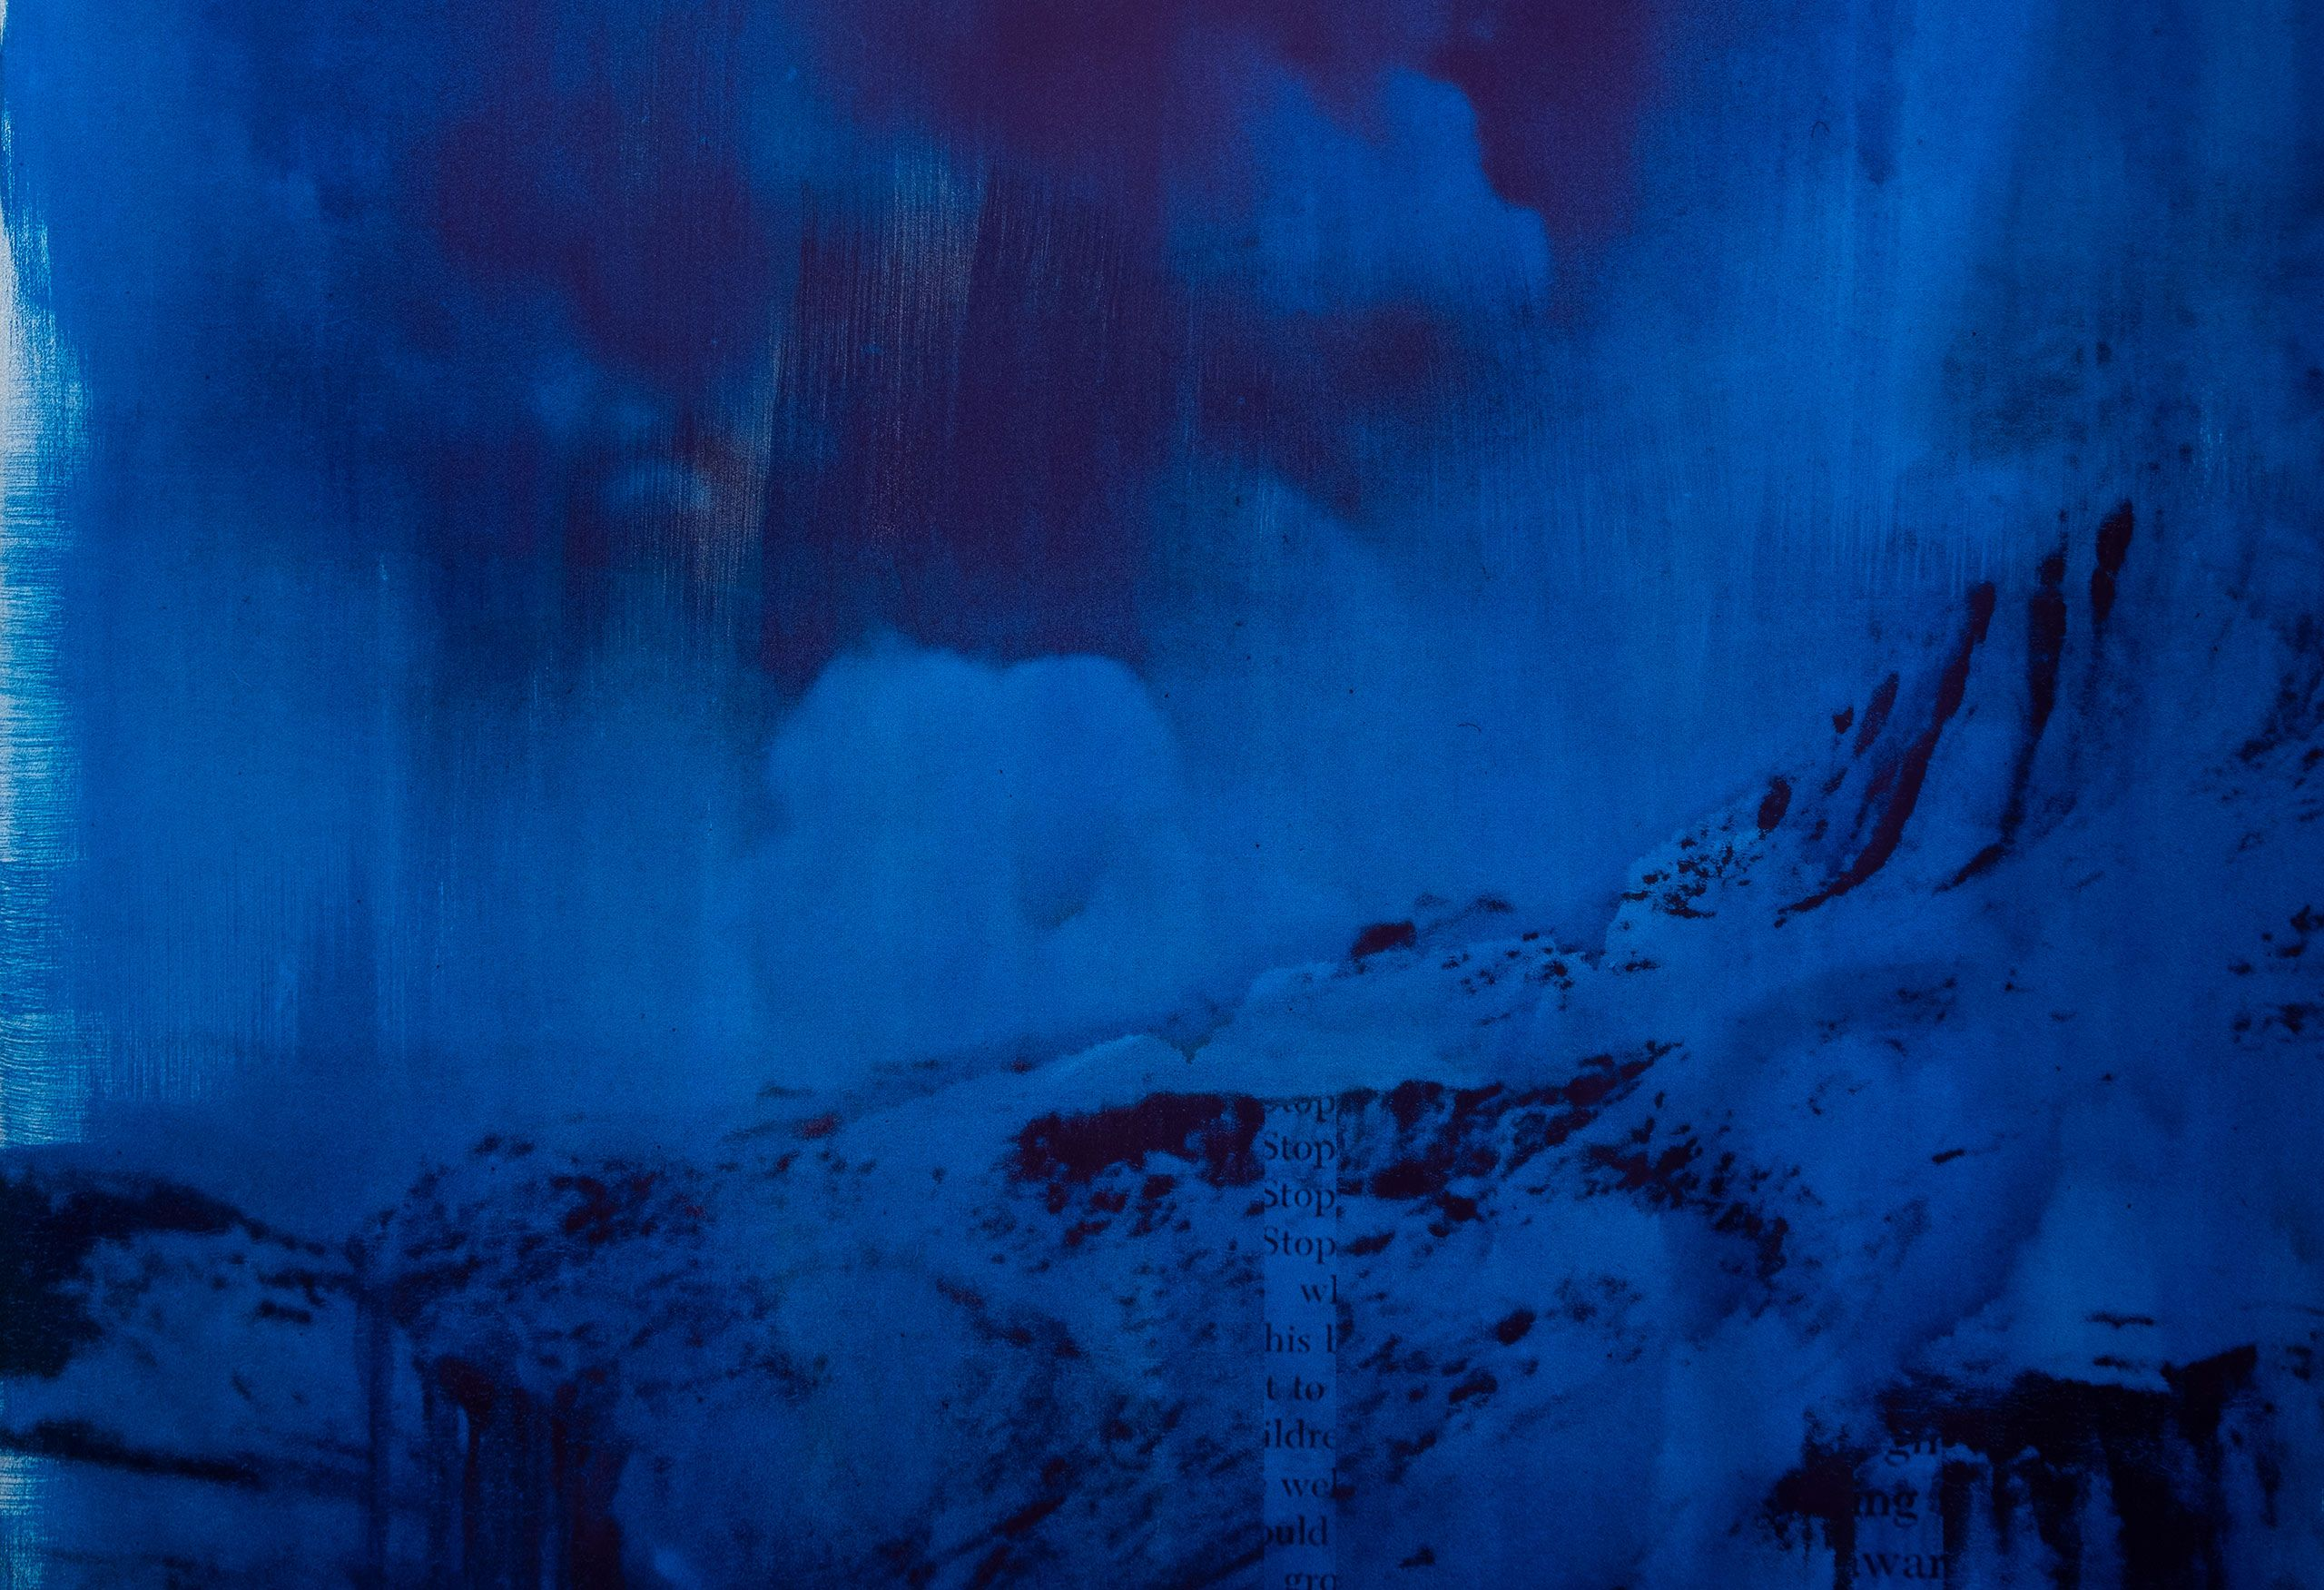 Blue Dark, 2018 (detail)